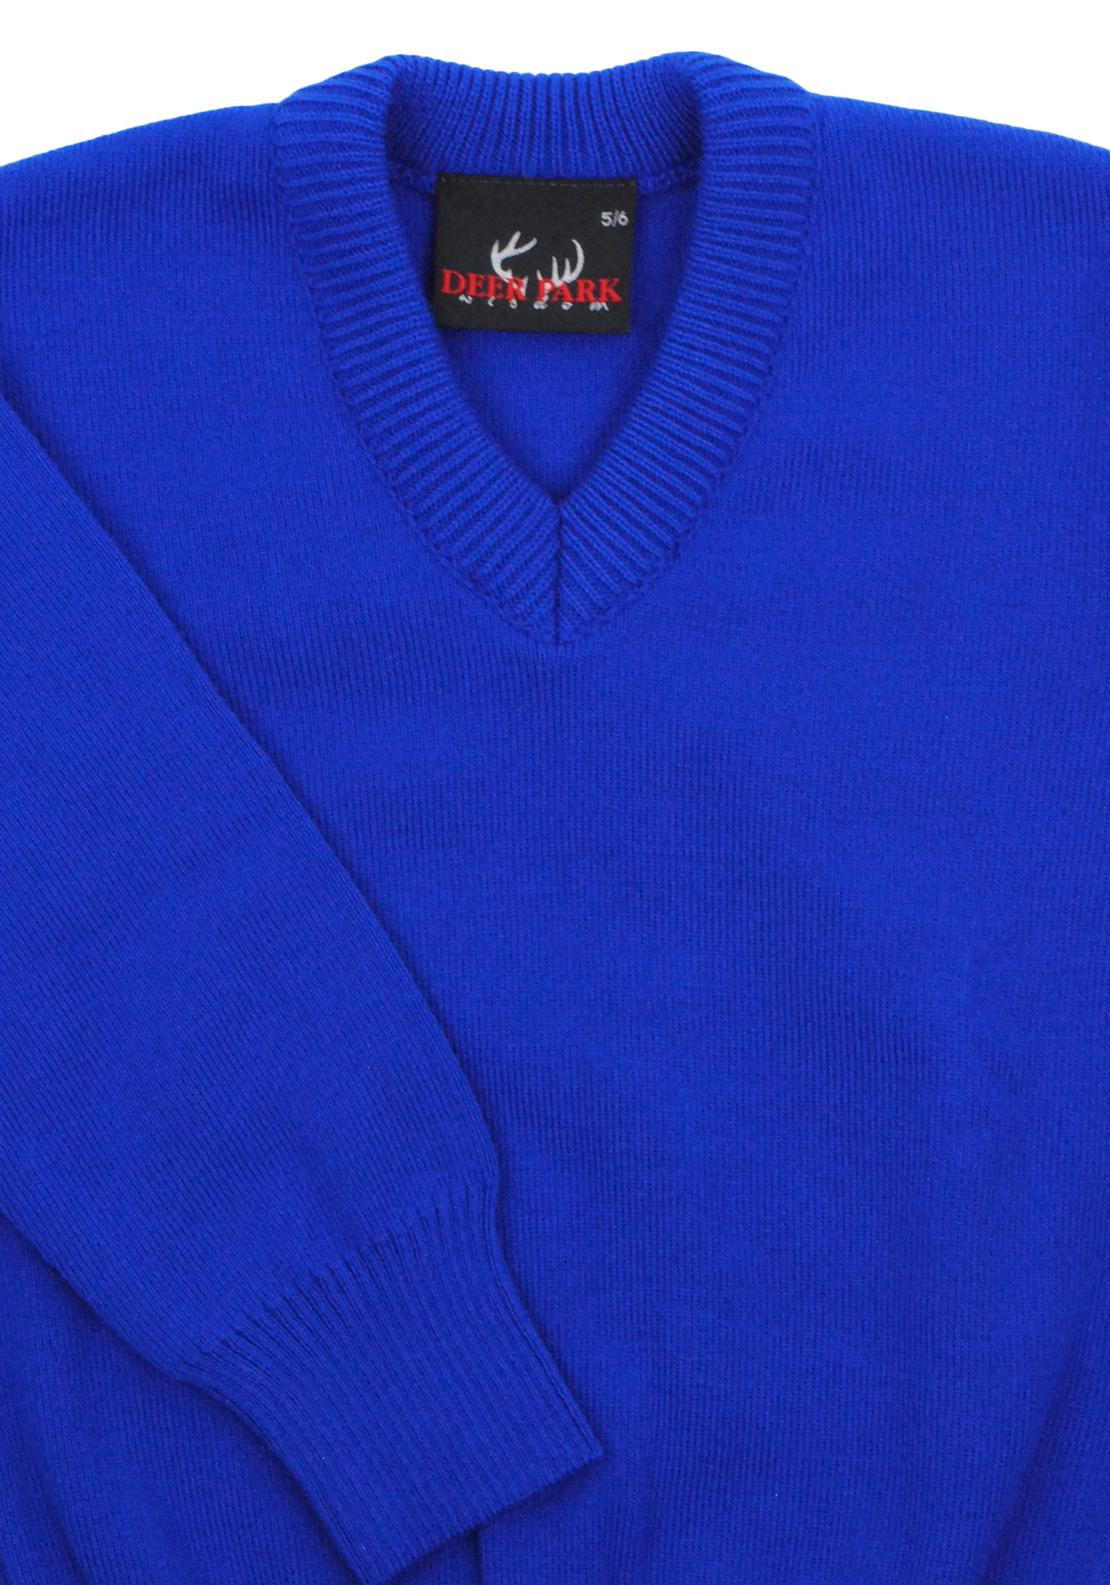 Deer Park School Jumper, Blue